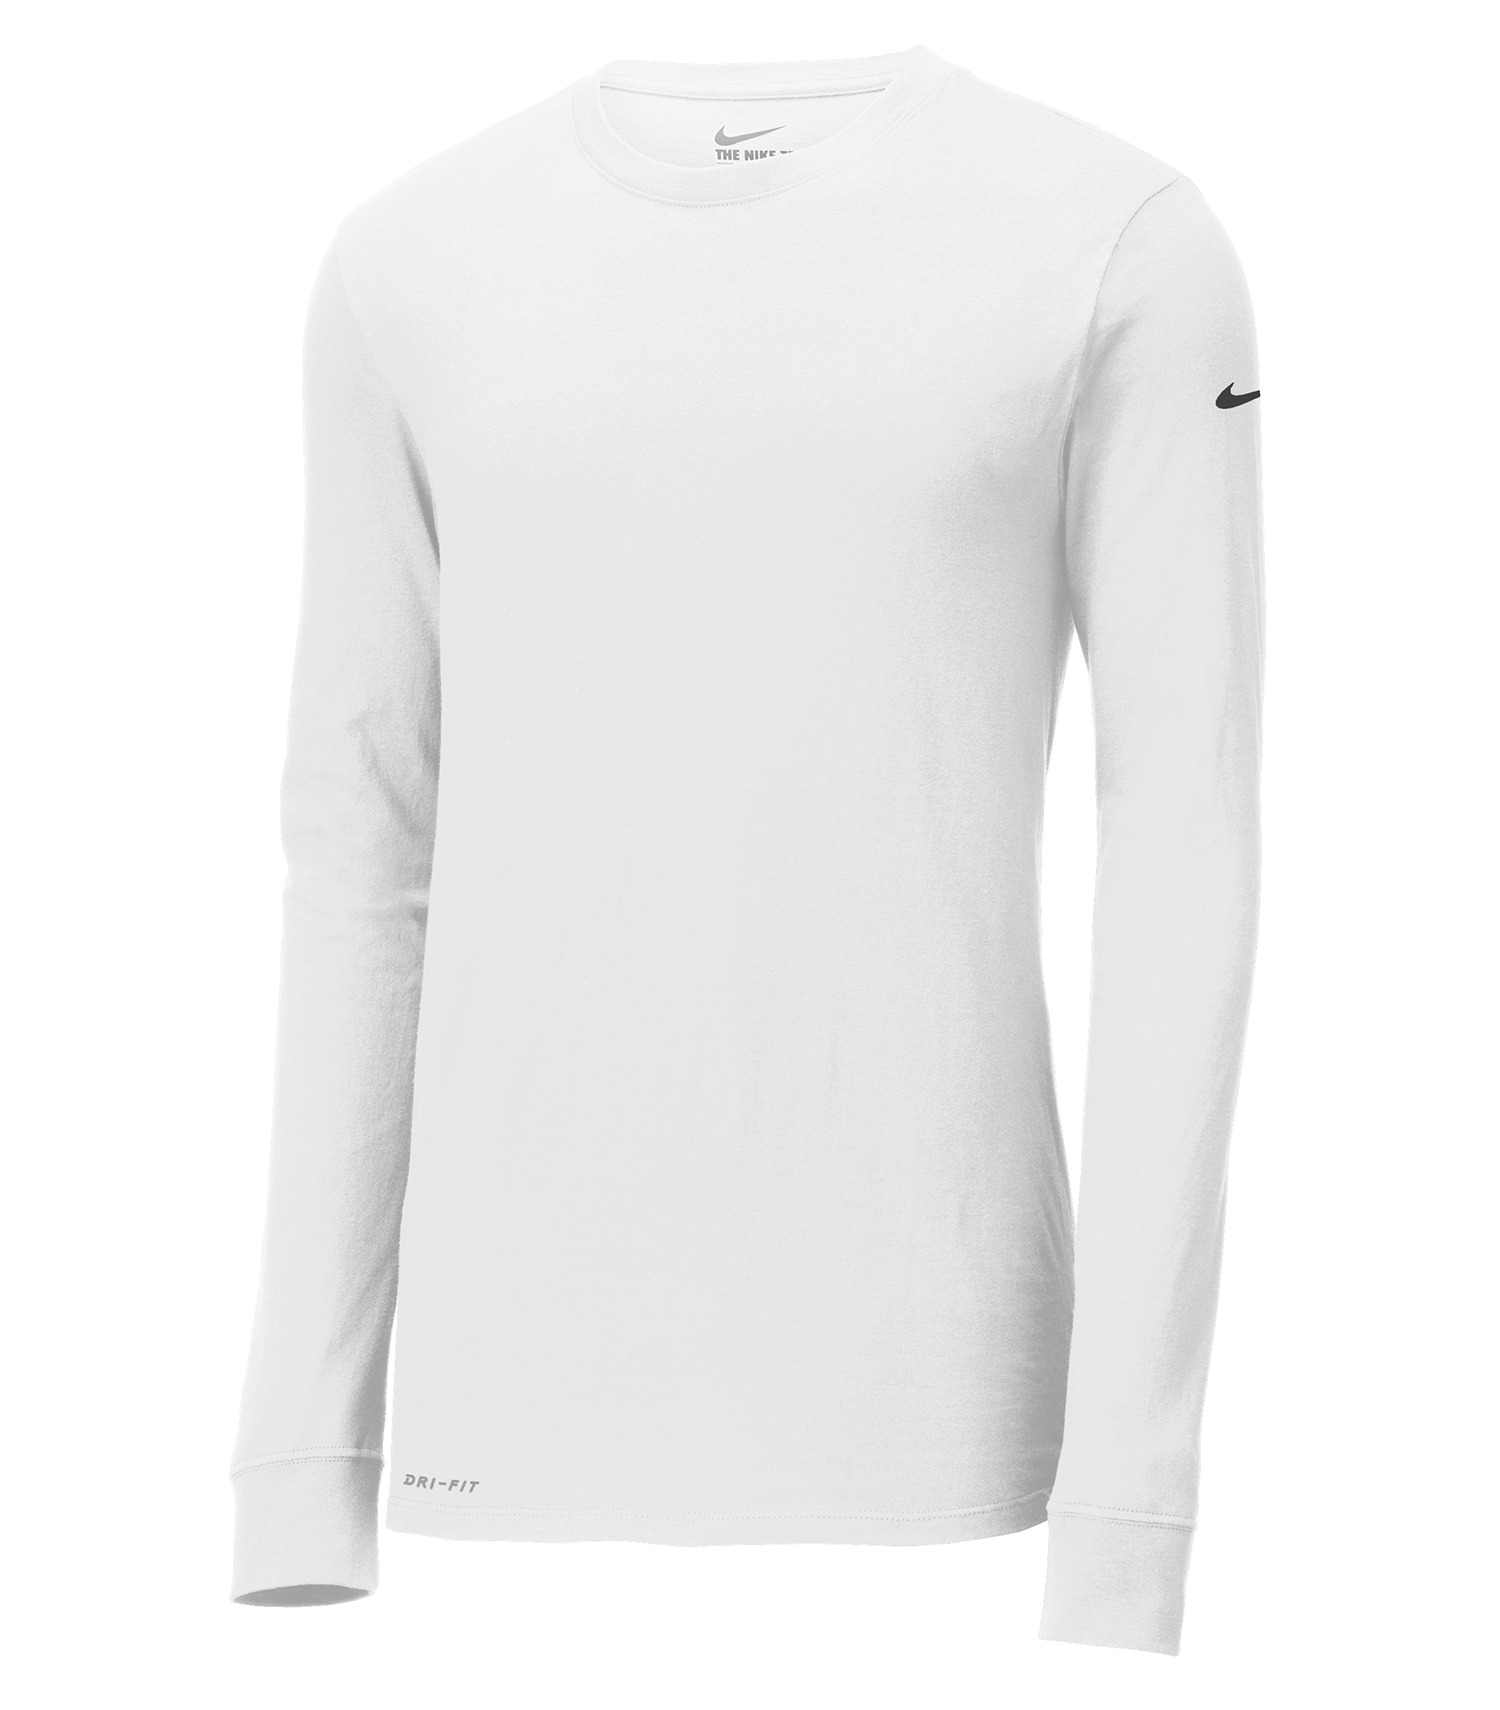 Picture of Nike Dri-Fit Cotton/Poly Long Sleeve Tee